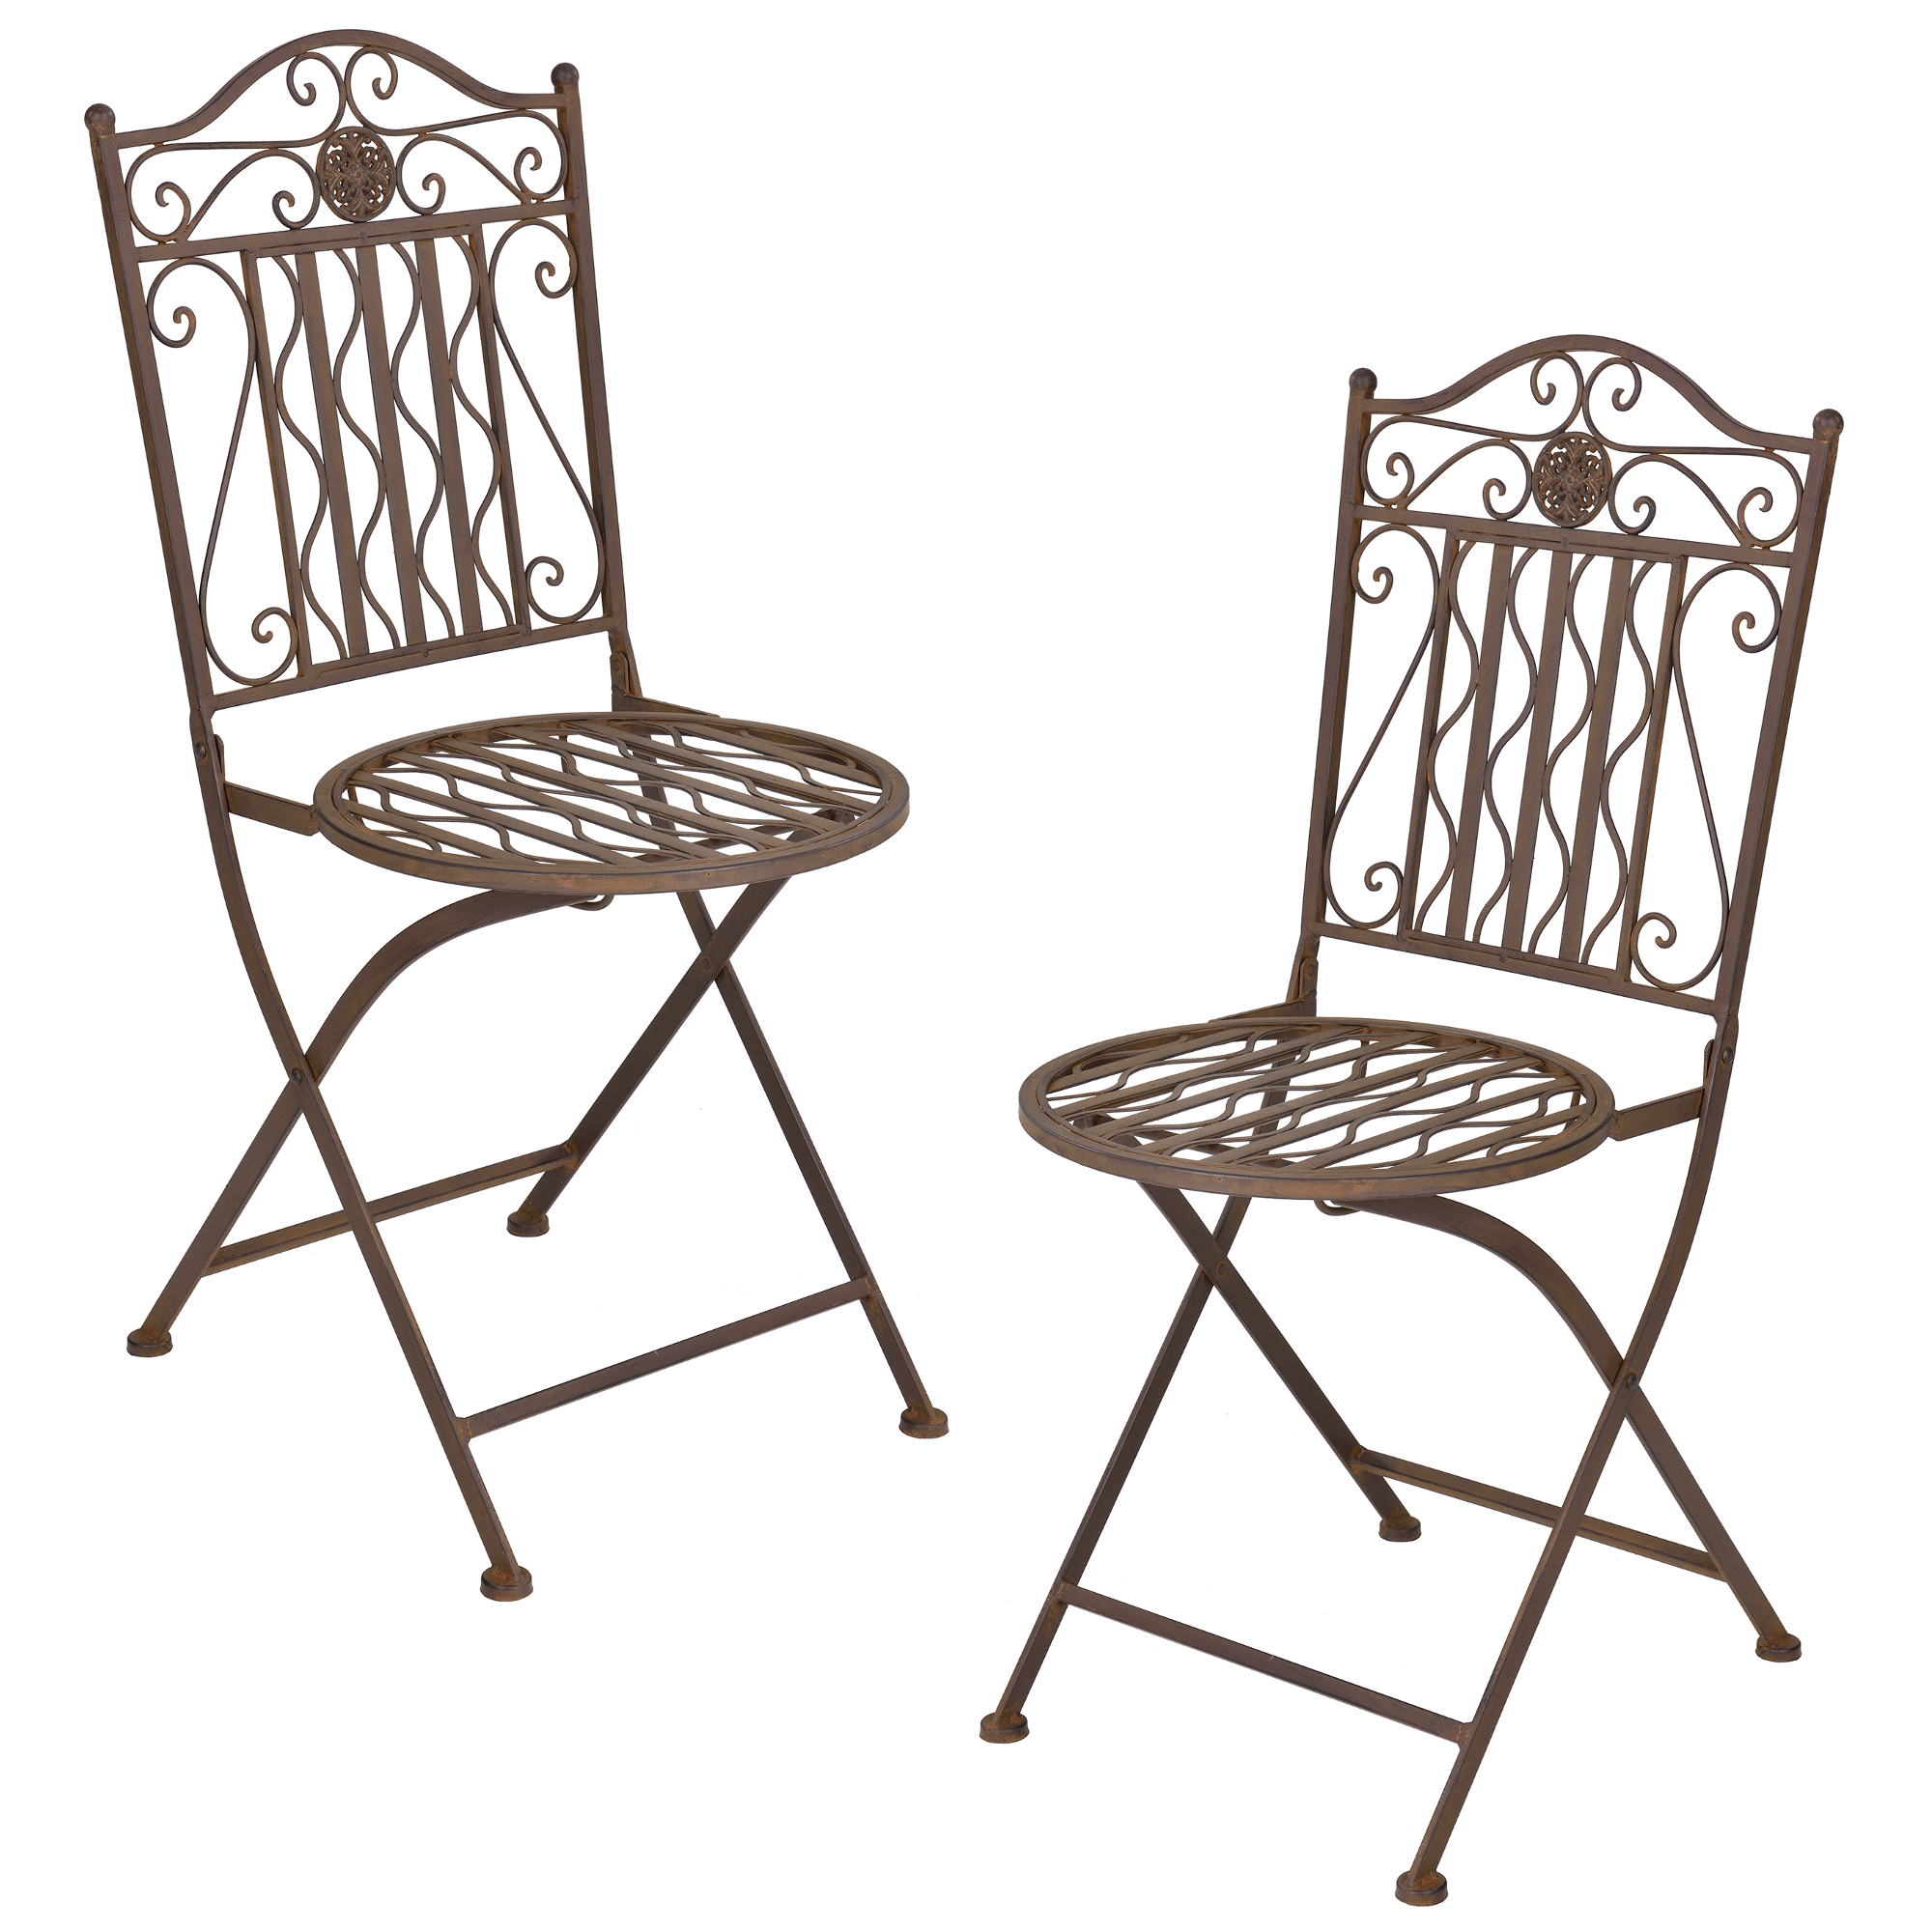 bistrot set table 2 chaises ensemble de jardin salon ensemble de si ges ebay. Black Bedroom Furniture Sets. Home Design Ideas